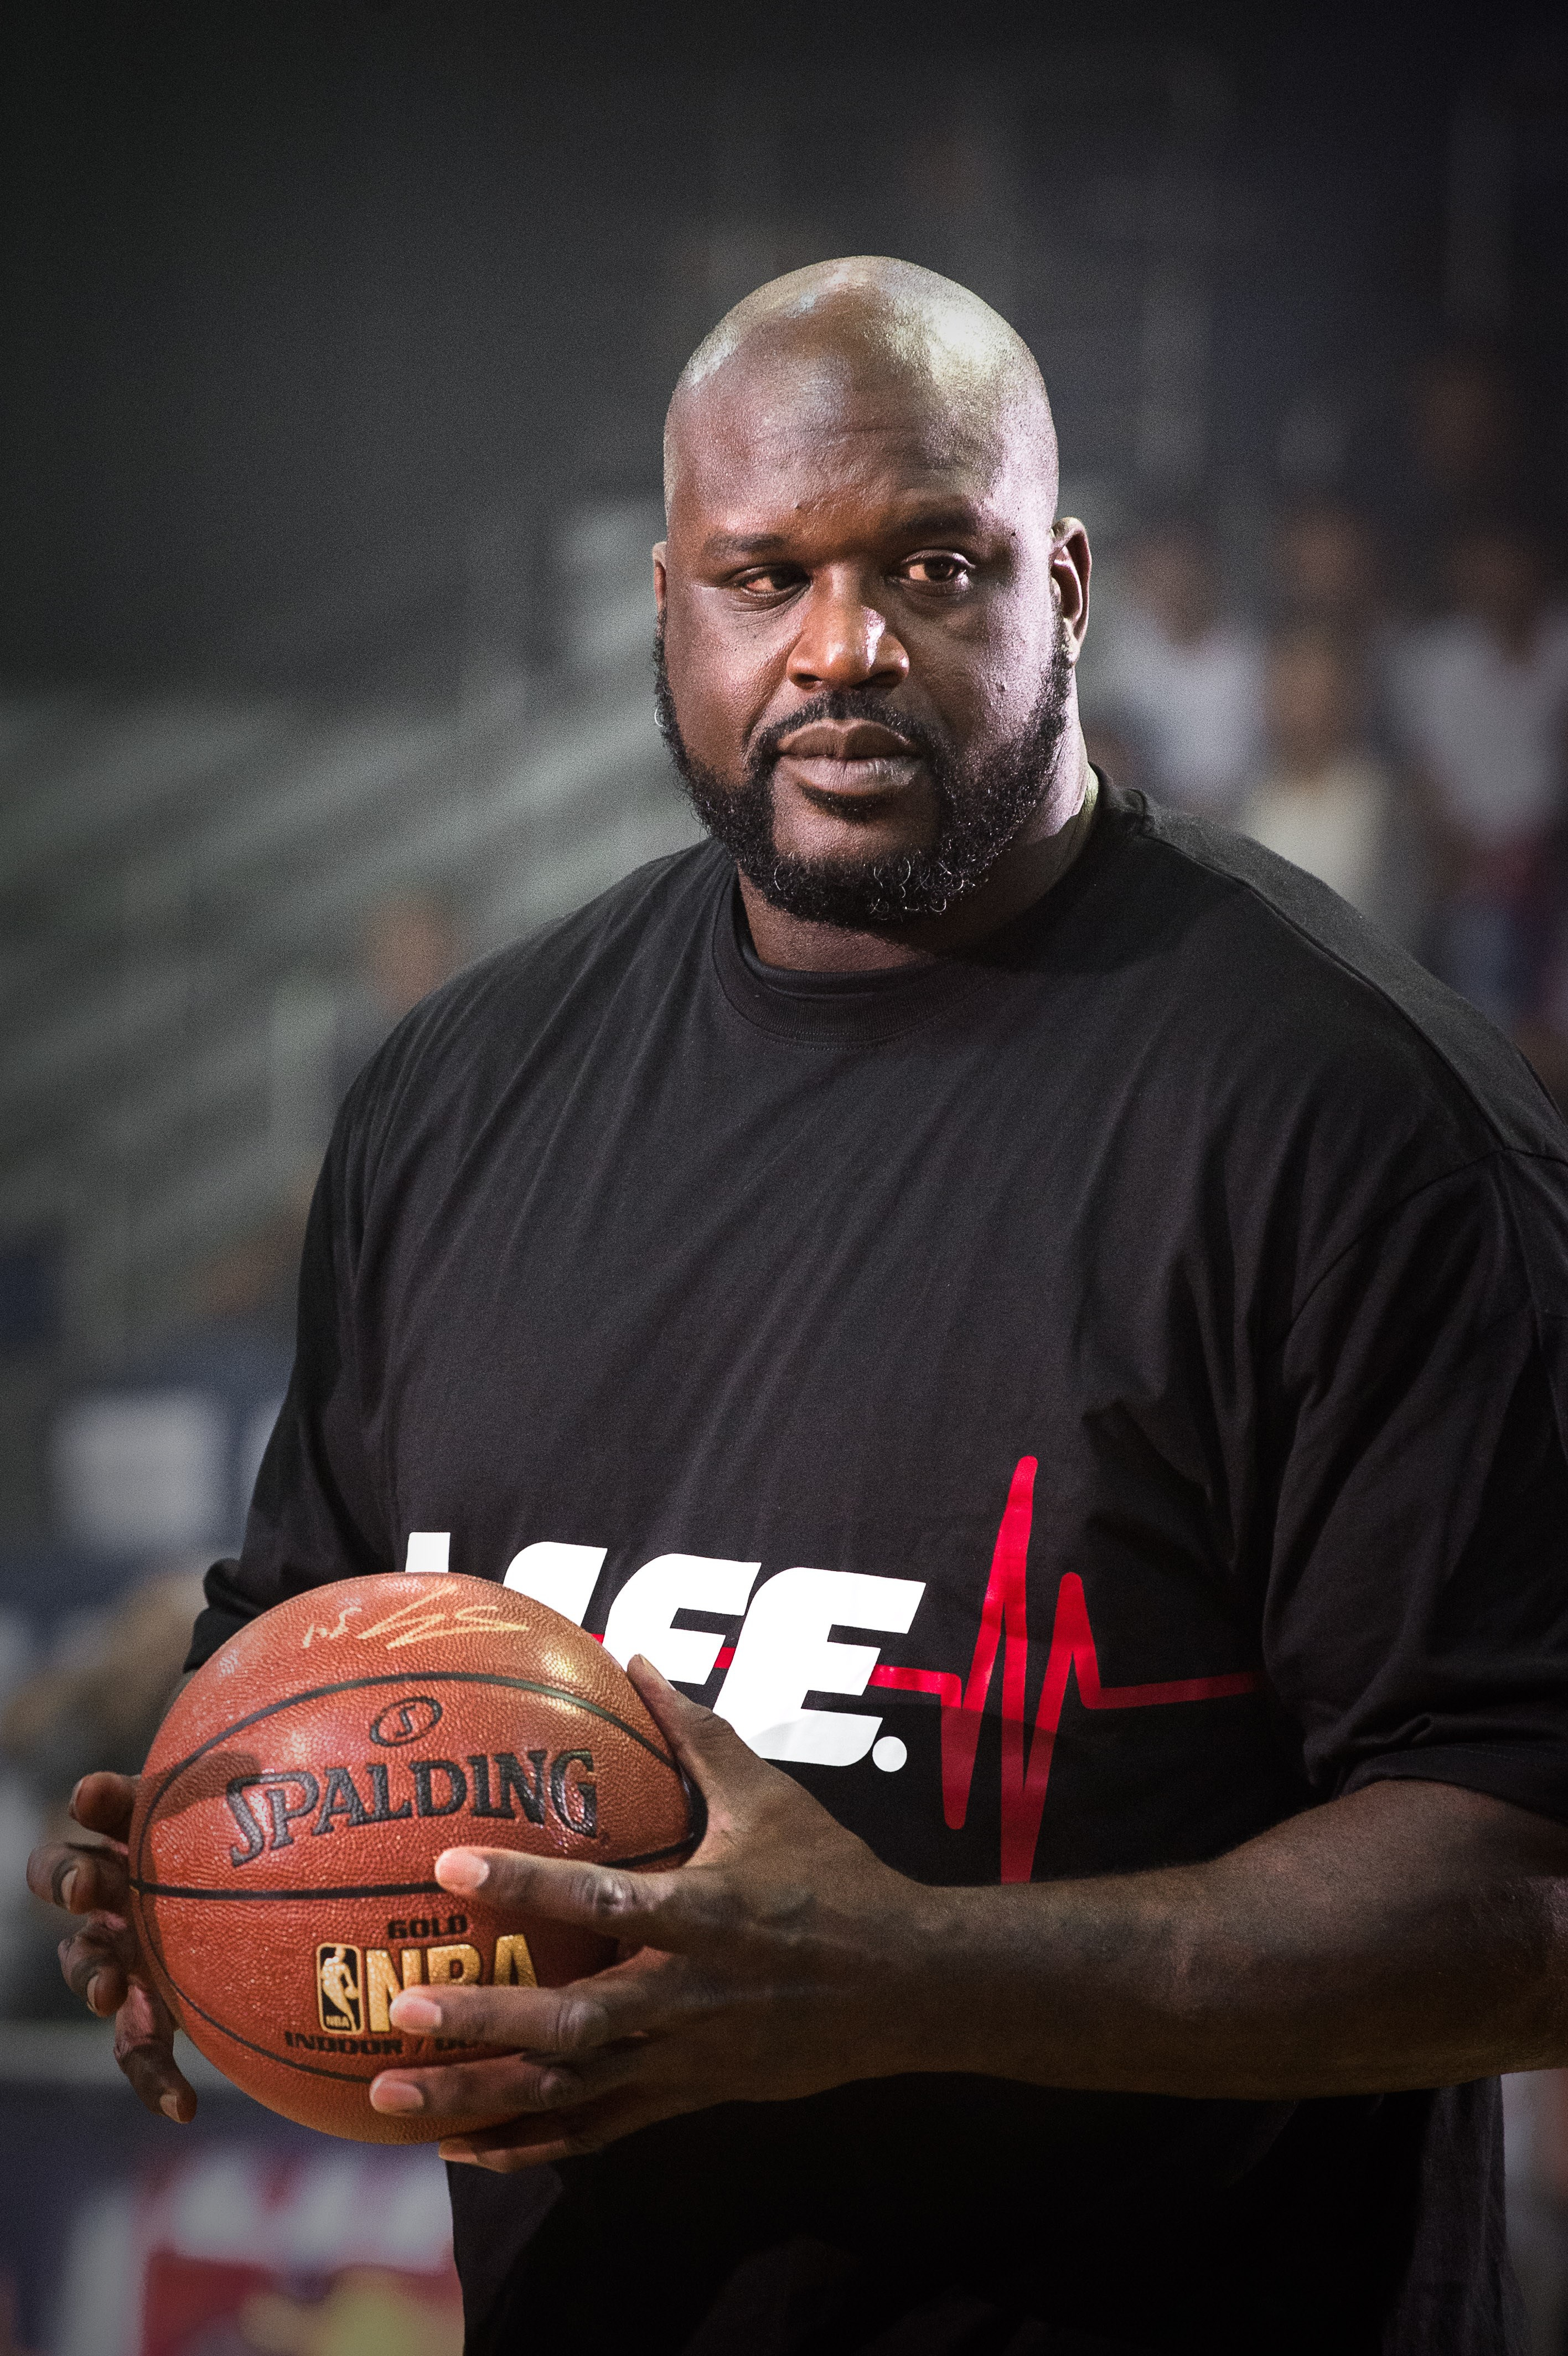 Shaq NBA Career - Shaquille O'Neal Interview on NBA Retirement